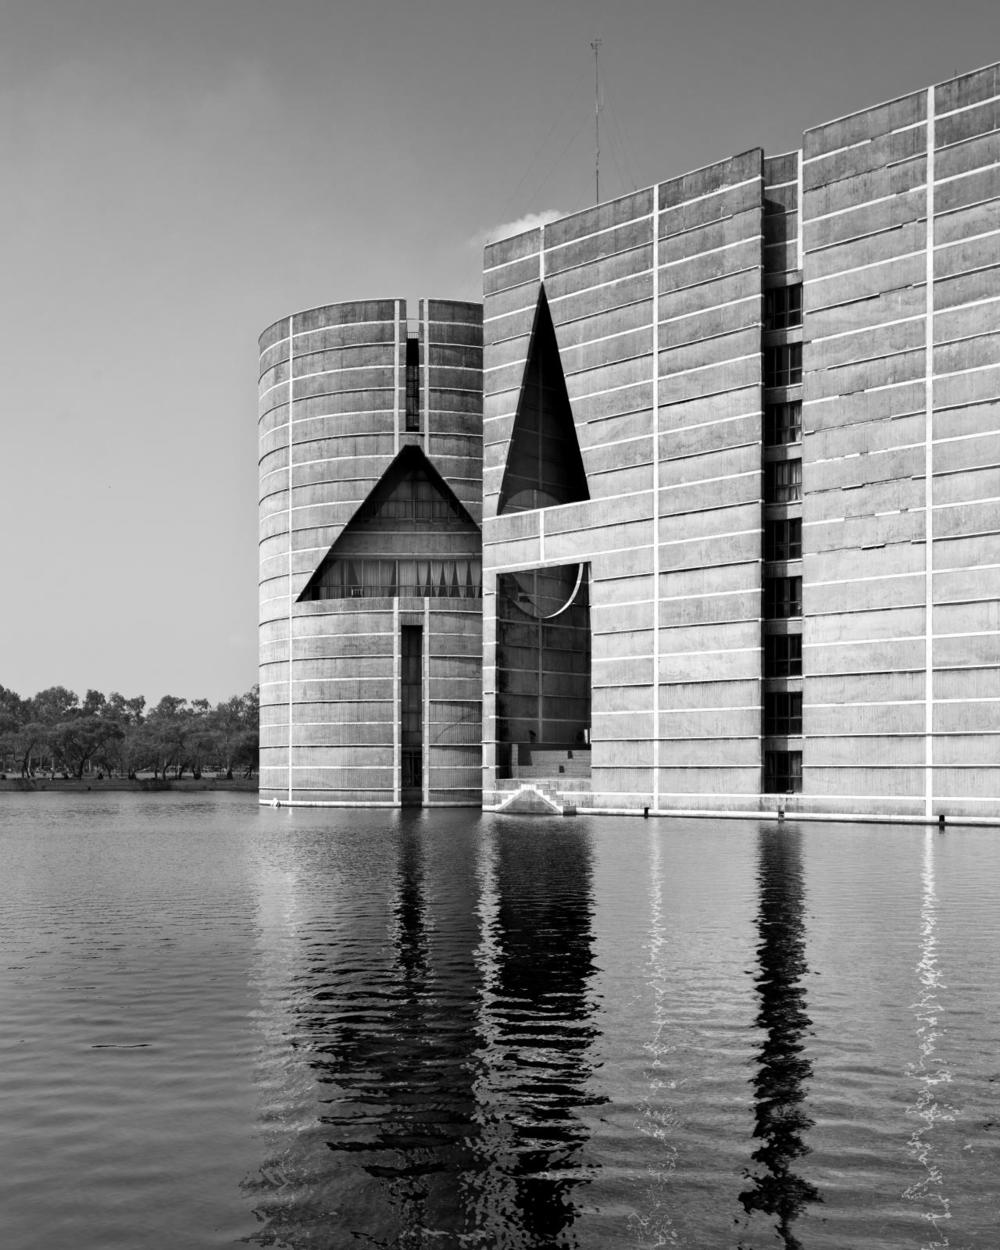 National Assembly Building in Dhaka, Bangladesh. Image © Naquib Hossain.